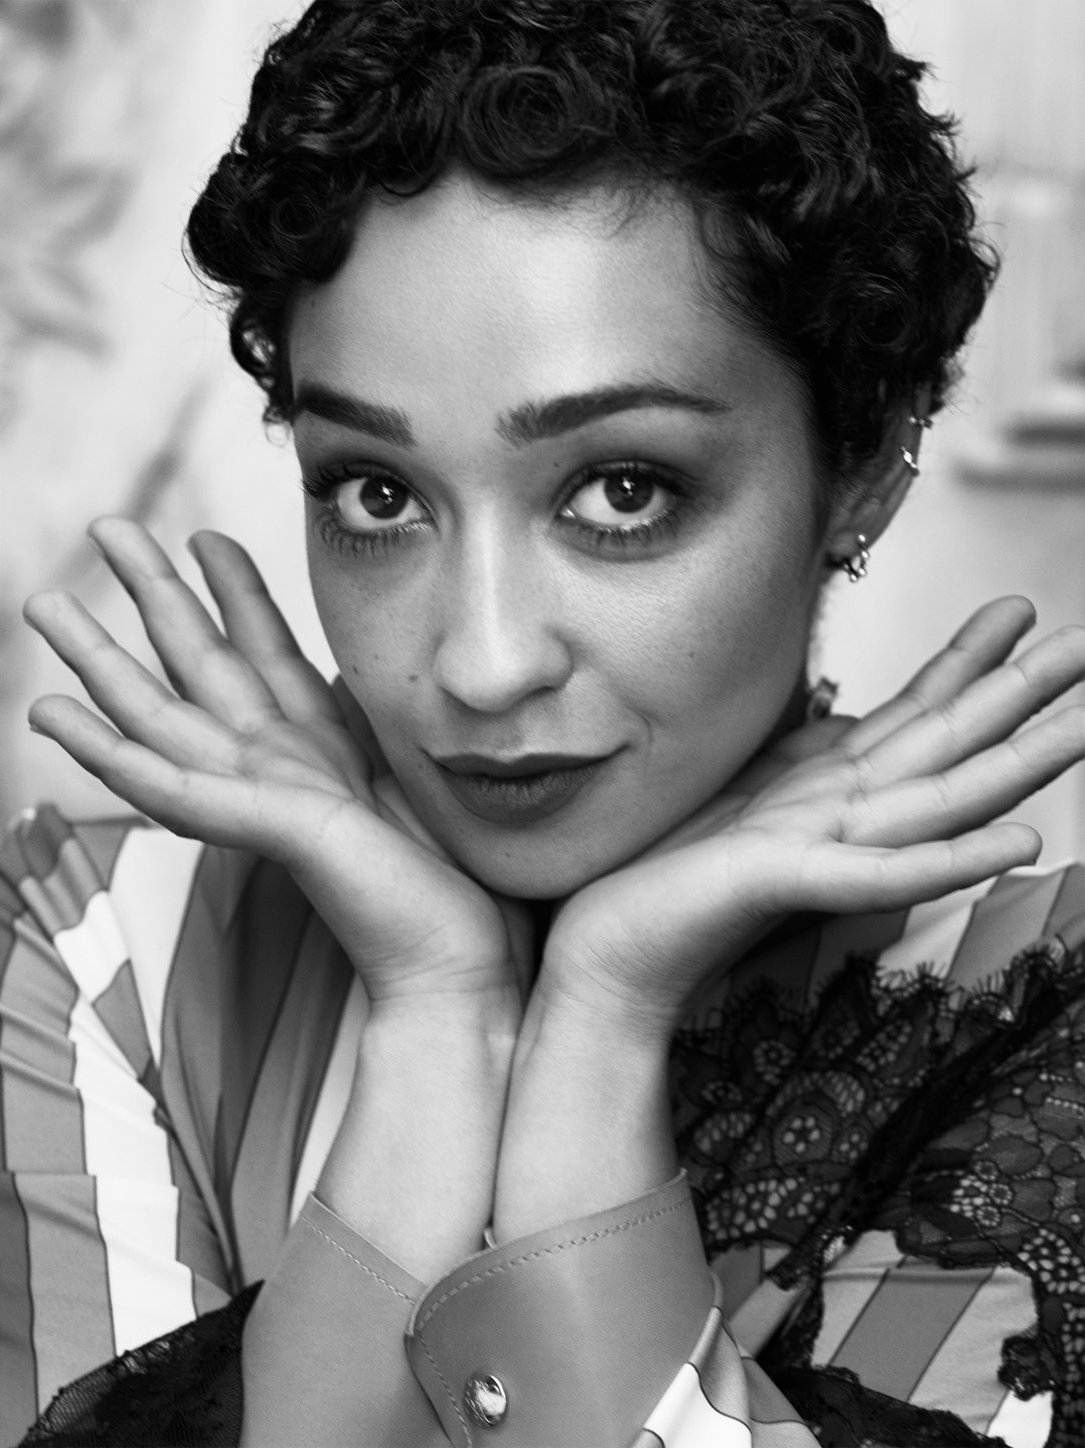 Ruth Negga On Tumblr: Ruth Negga In Town & Country US August 2017 By Victor